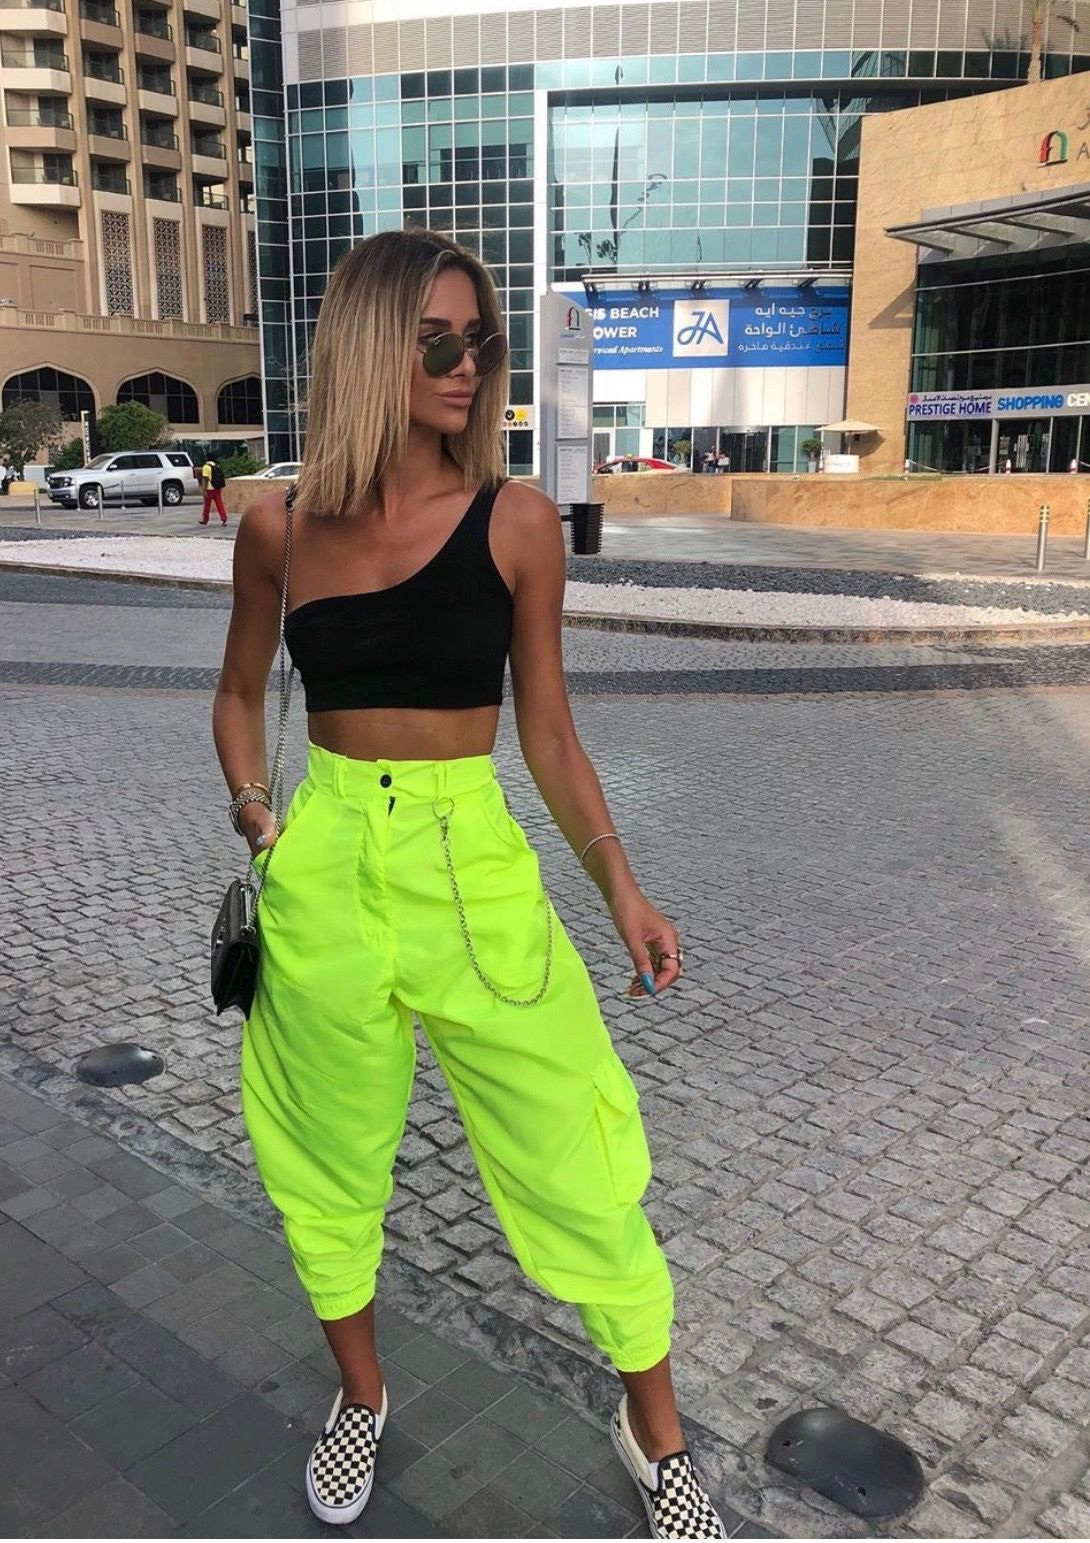 Neon Outfit in 2020 | Neon outfits, Neon party outfits, Neon dresses